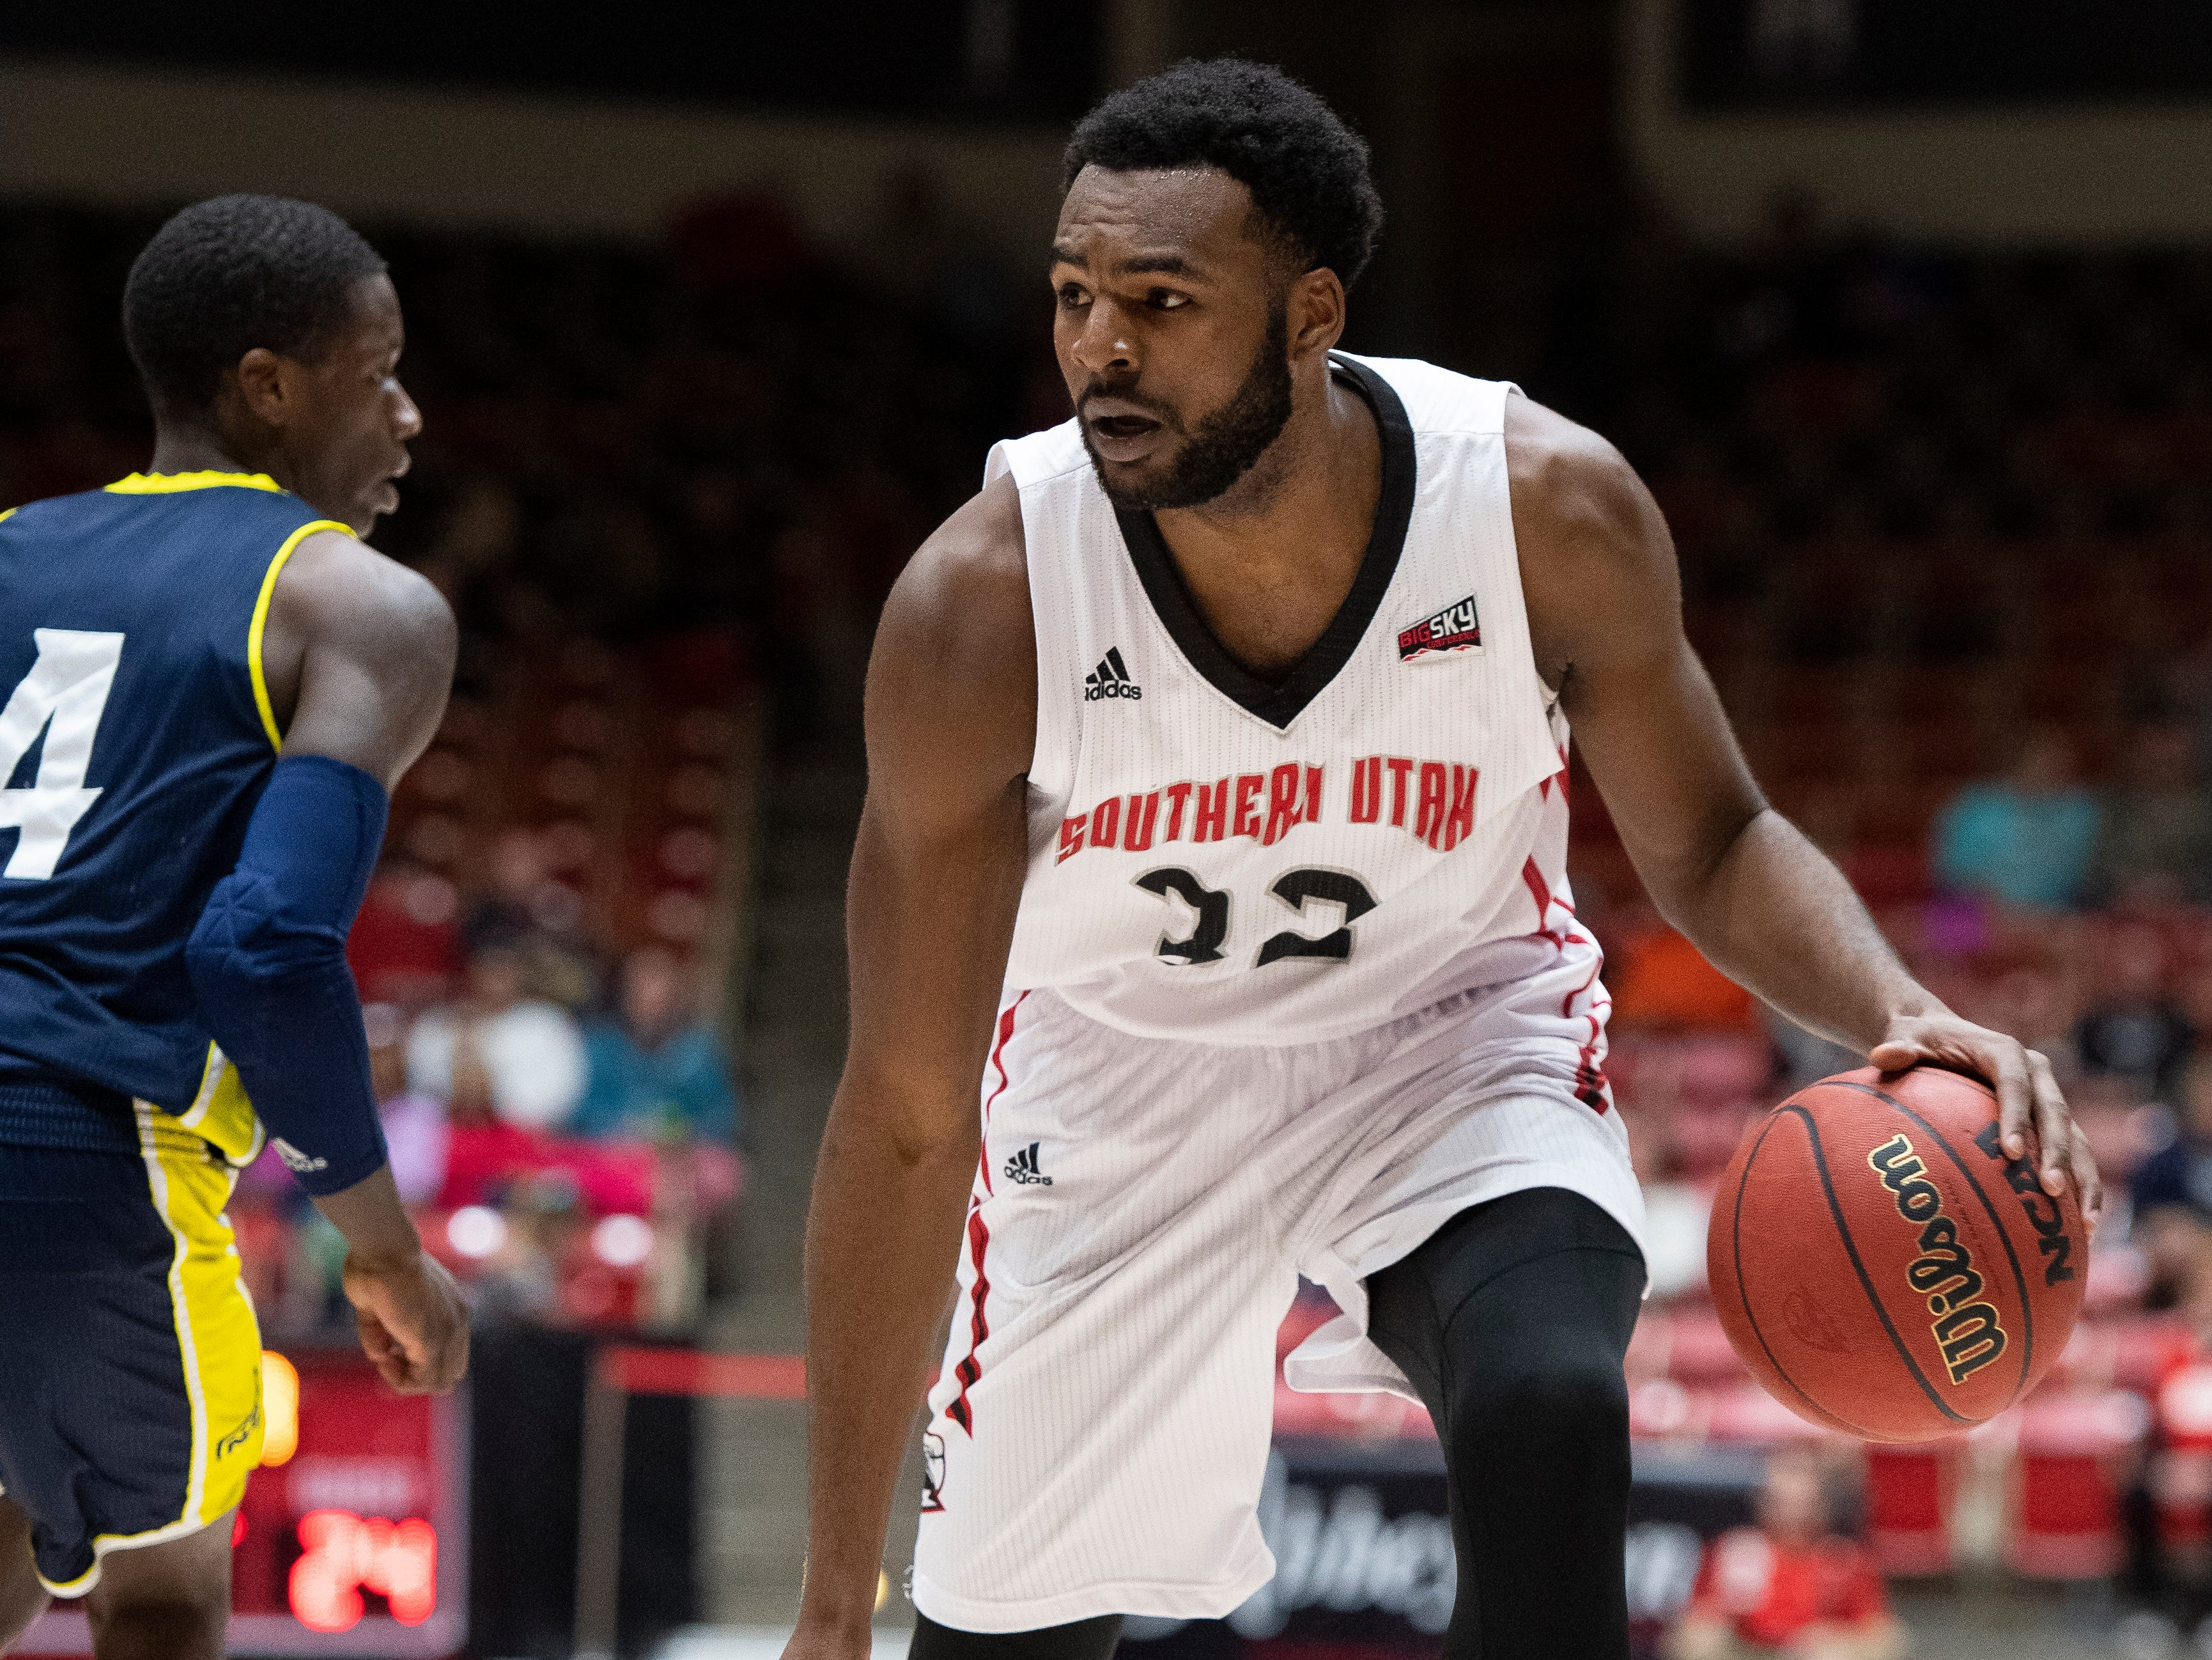 Southern Utah University junior Andre Adams (32) stares down his Northern Arizona opponent at the America First Event Center Saturday, January 12, 2019. SUU won, 84-82.